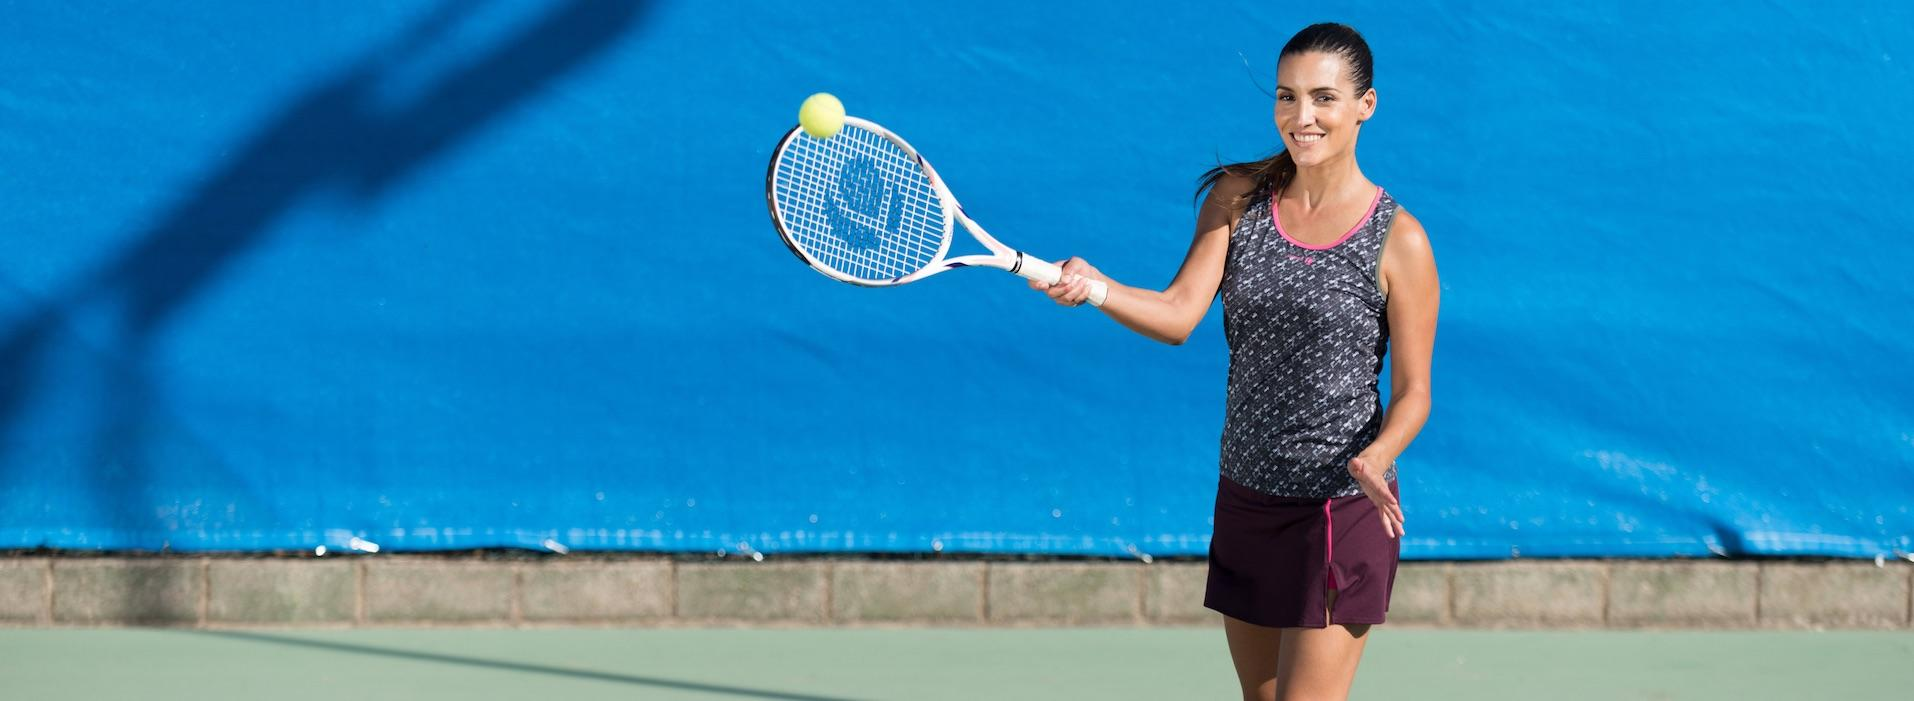 How to Choose Your Racket Sports Clothing for Women?